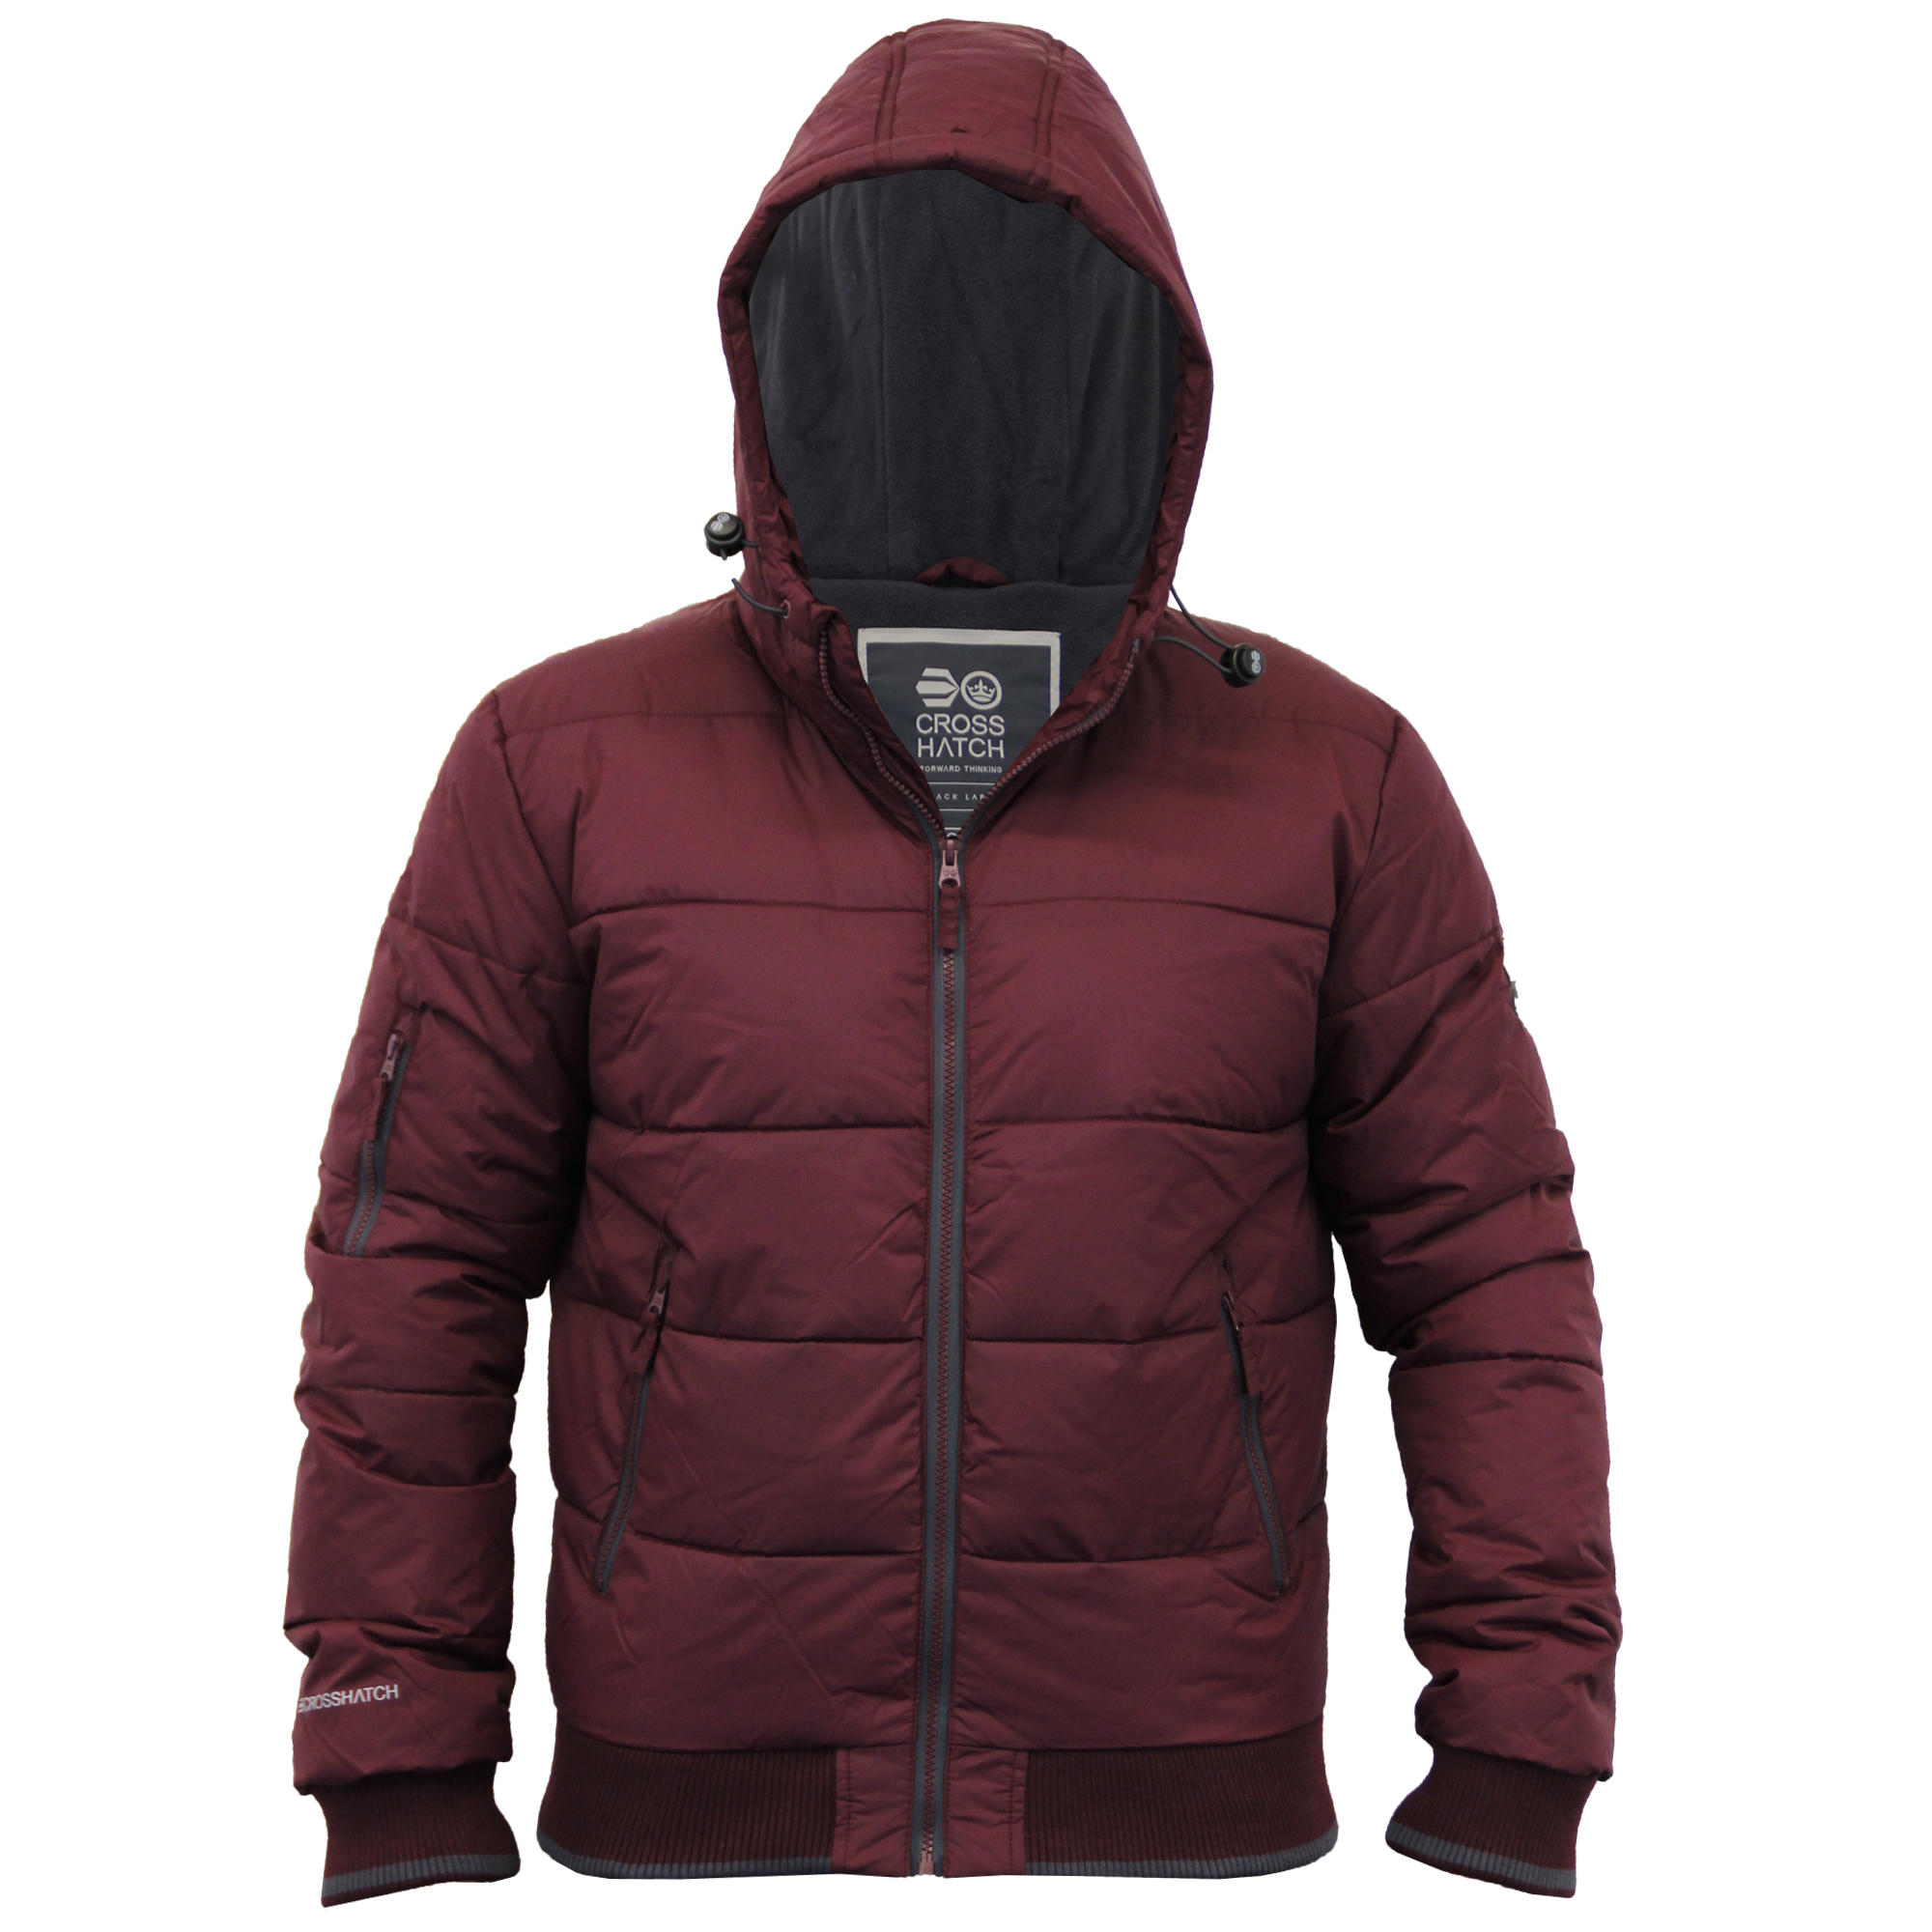 Mens Padded Crosshatch Jacket Quilted Fleece Lined Hooded ...